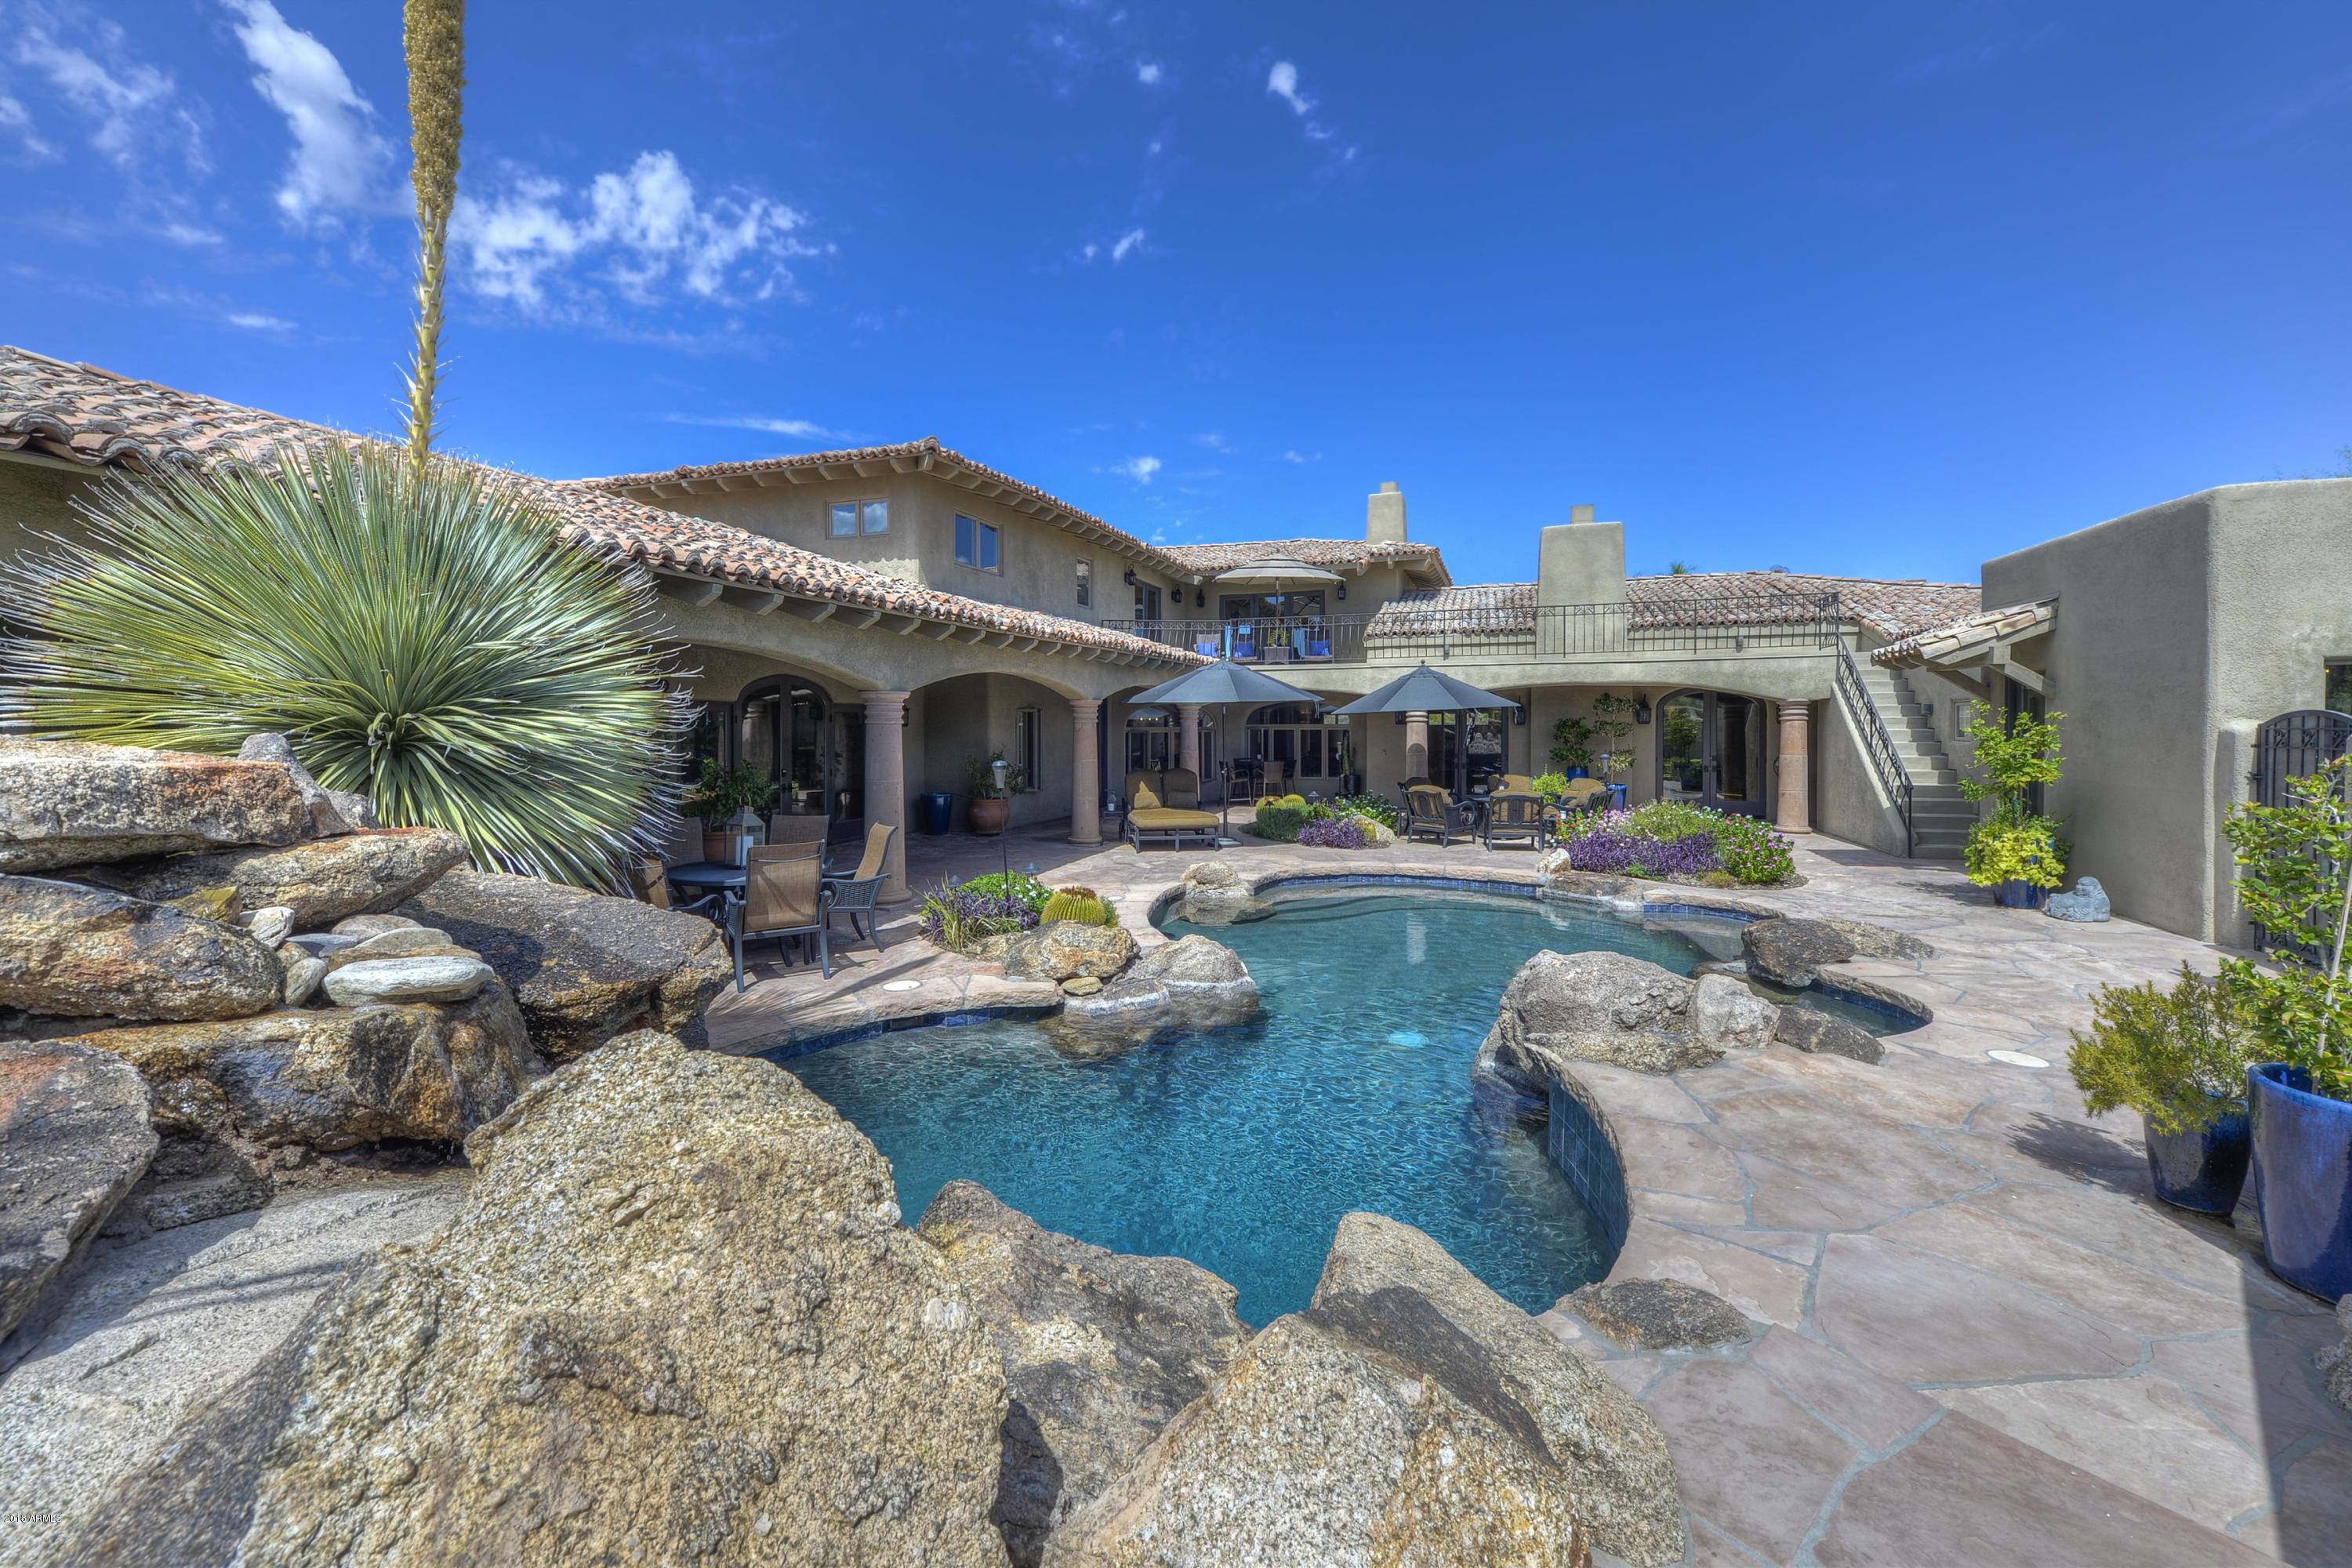 MLS 5827279 10040 E HAPPY VALLEY Road Unit 387, Scottsdale, AZ 85255 Scottsdale AZ Private Pool